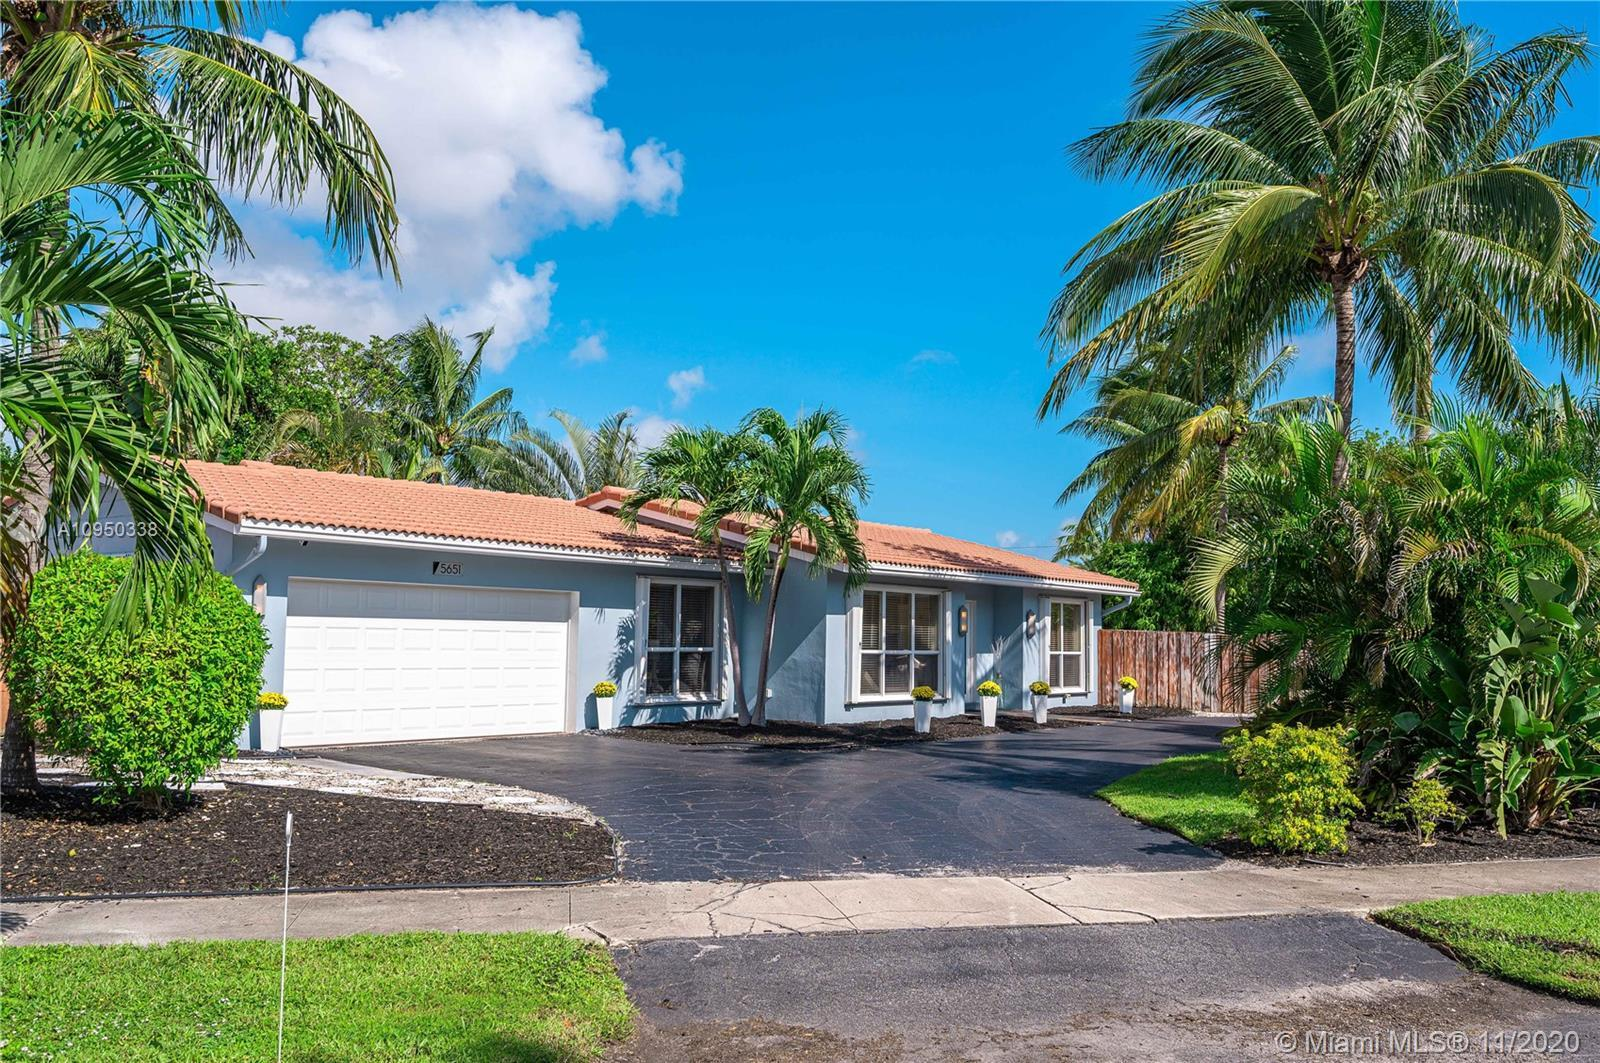 Immaculate move-in ready home in the quiet neighborhood of Imperial Point. Live the Florida Lifestyl